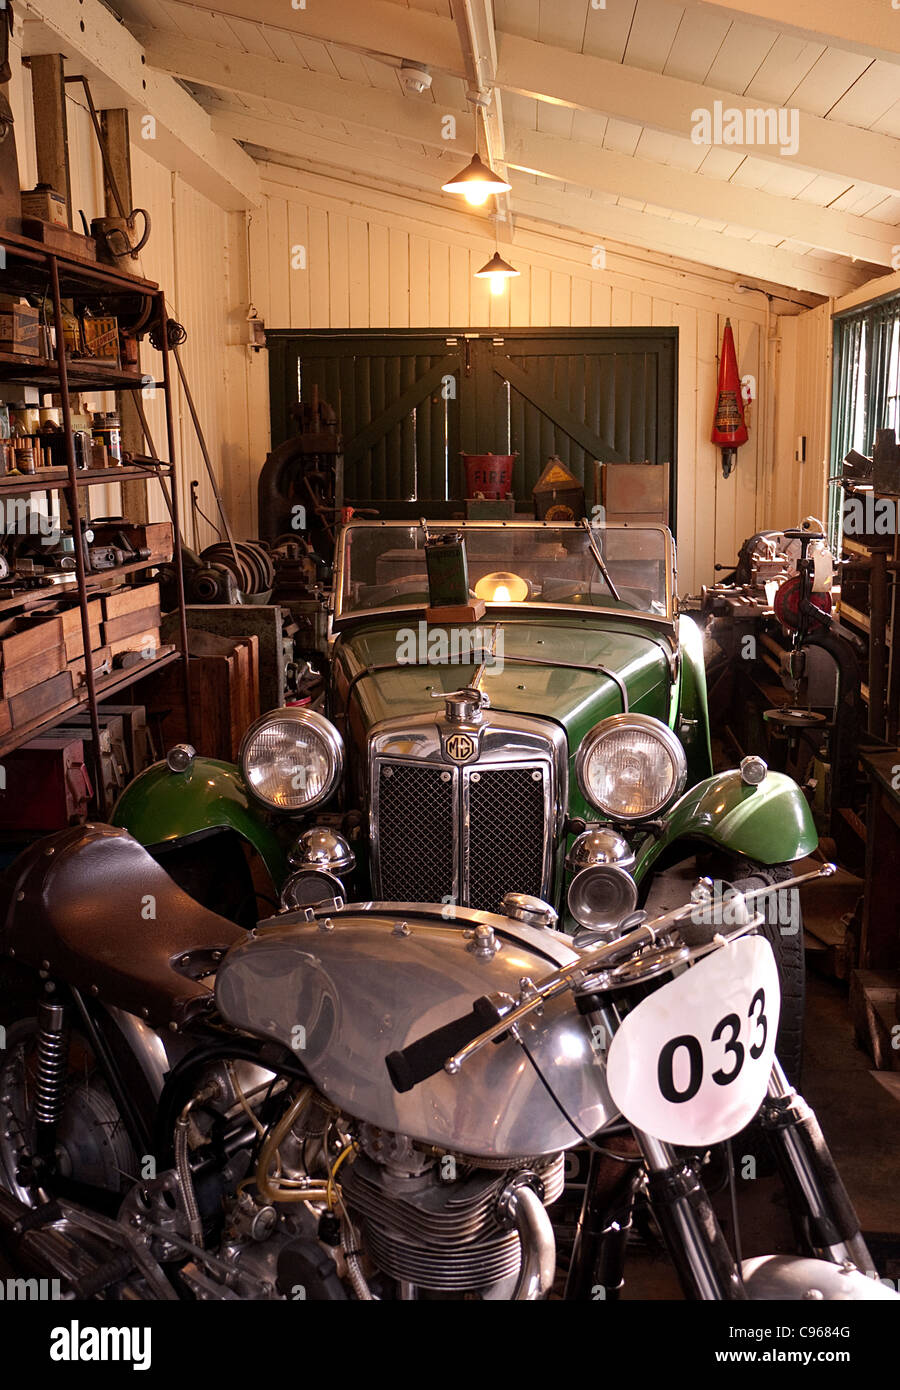 Classic car garage with 1930's MG car and motorcycle - Stock Image